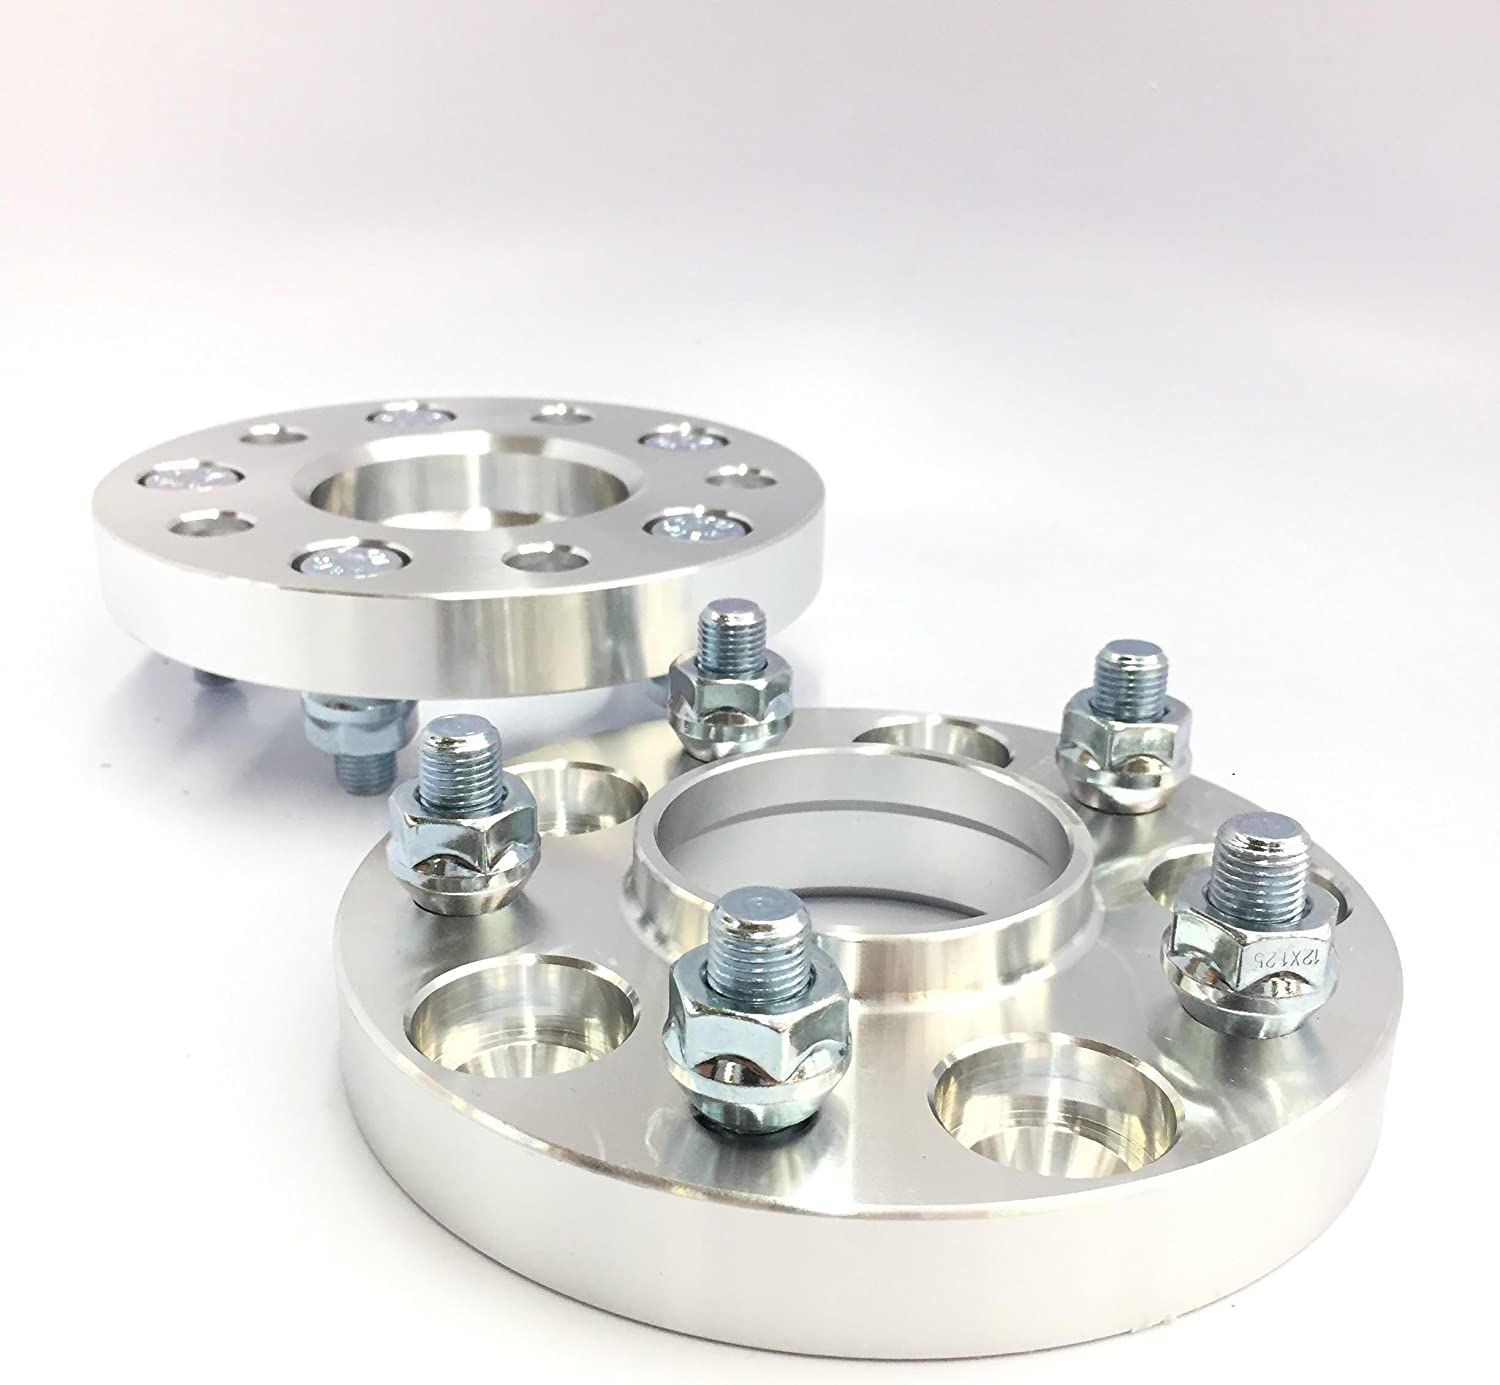 2X HUBCENTRIC Wheel SPACERS ADAPTERS 5X100 /¦ 12X1.25 /¦ 56.1 CB /¦ 22MM Subaru